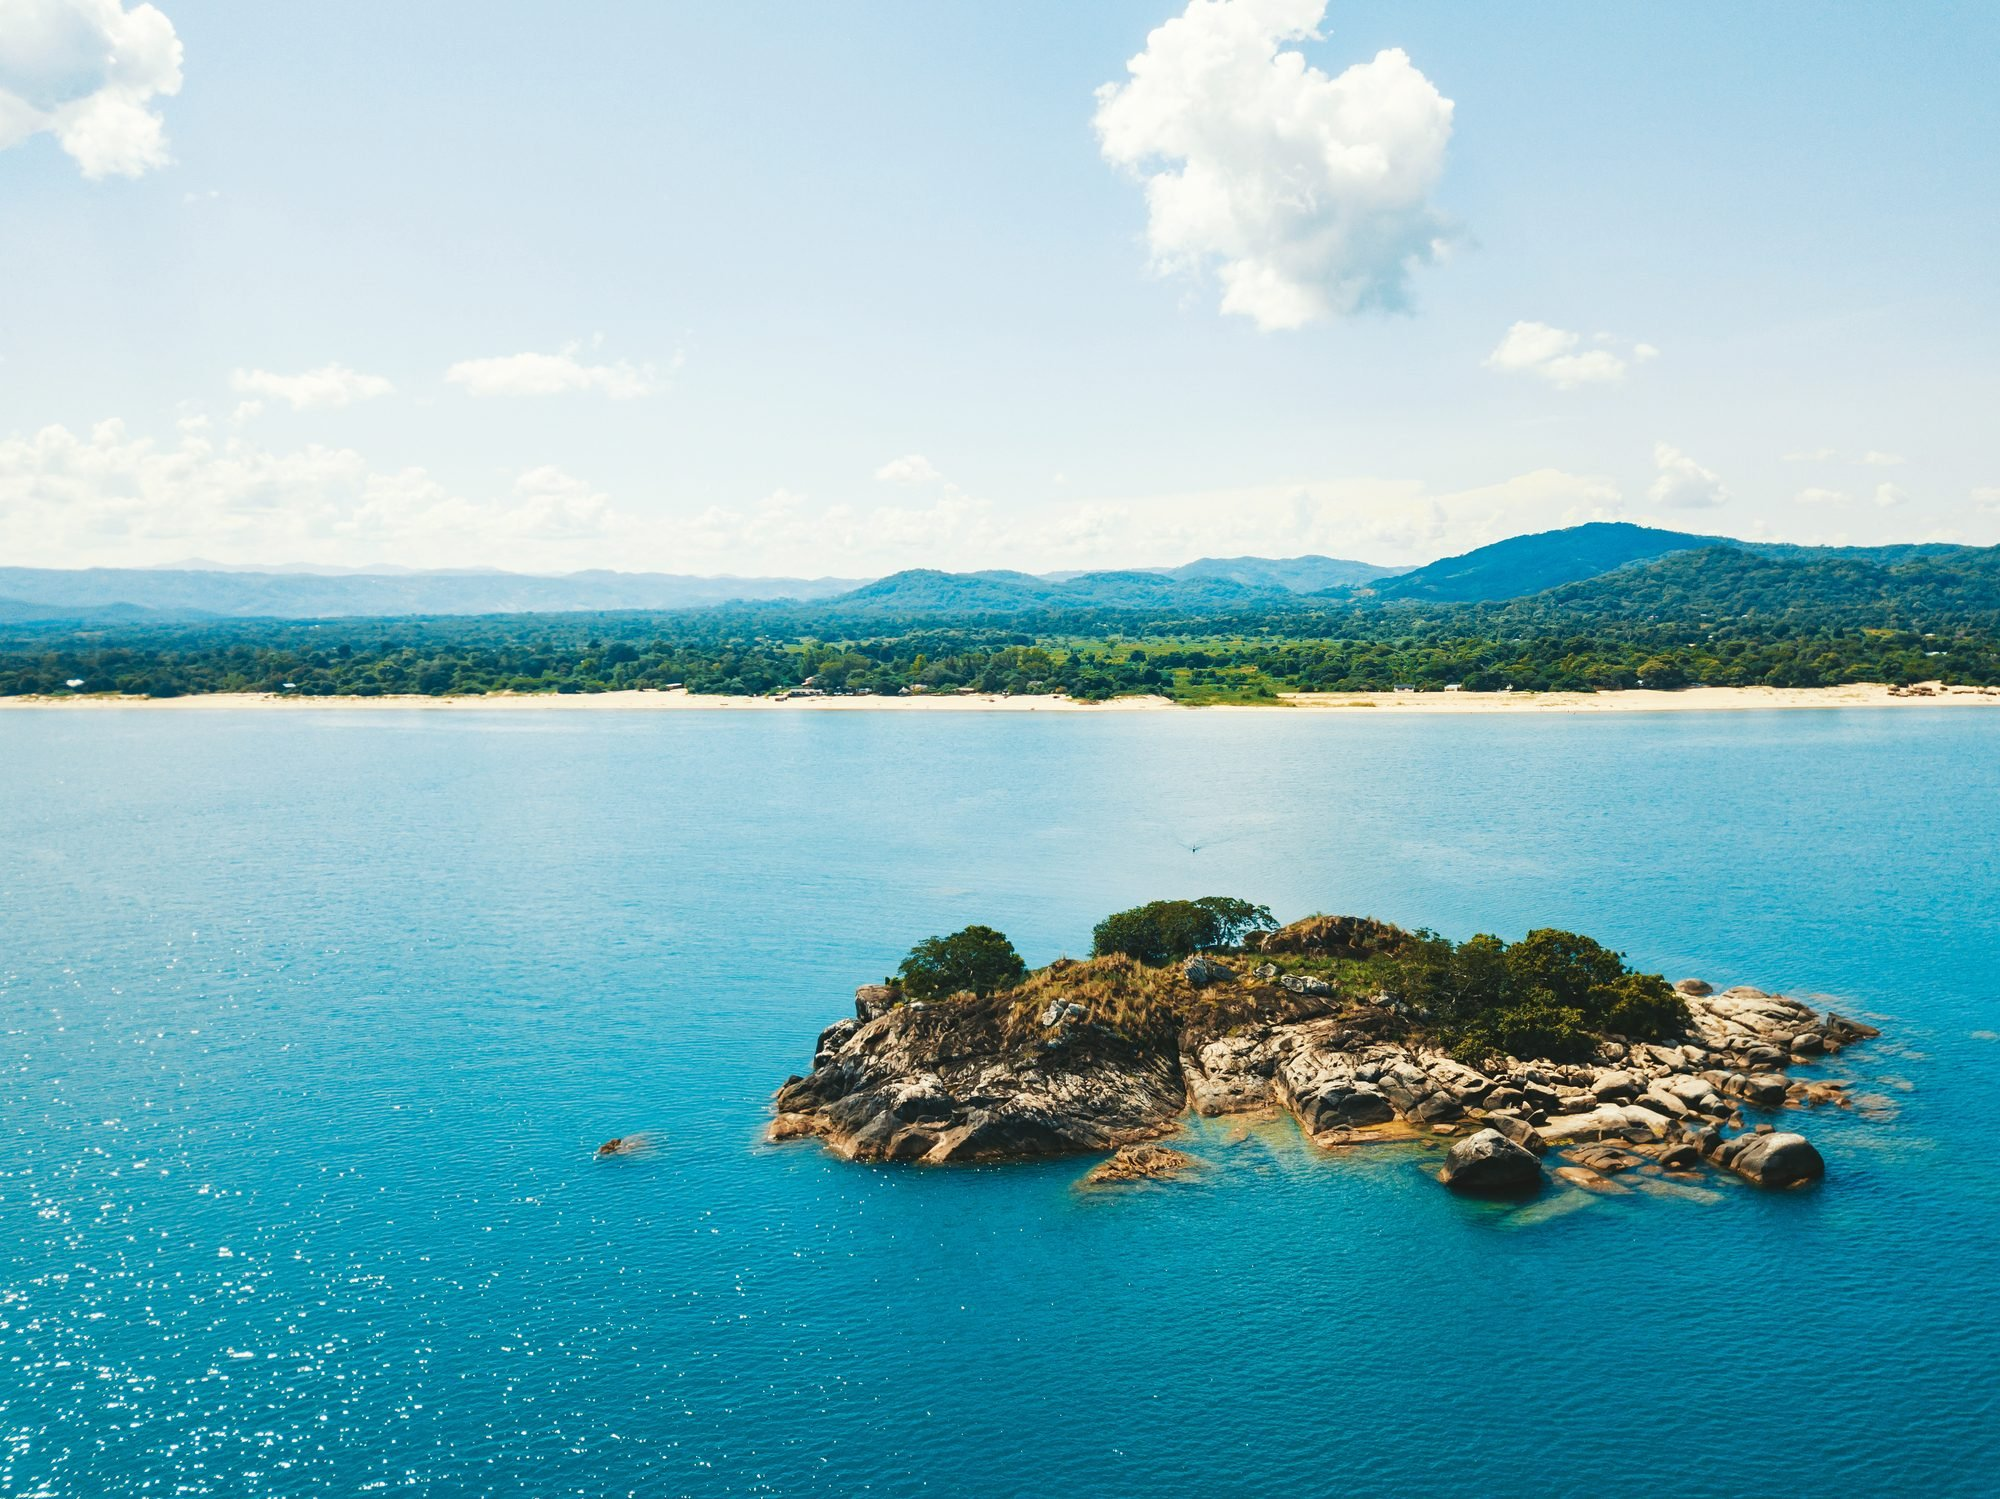 lake malawi with tiny island in the